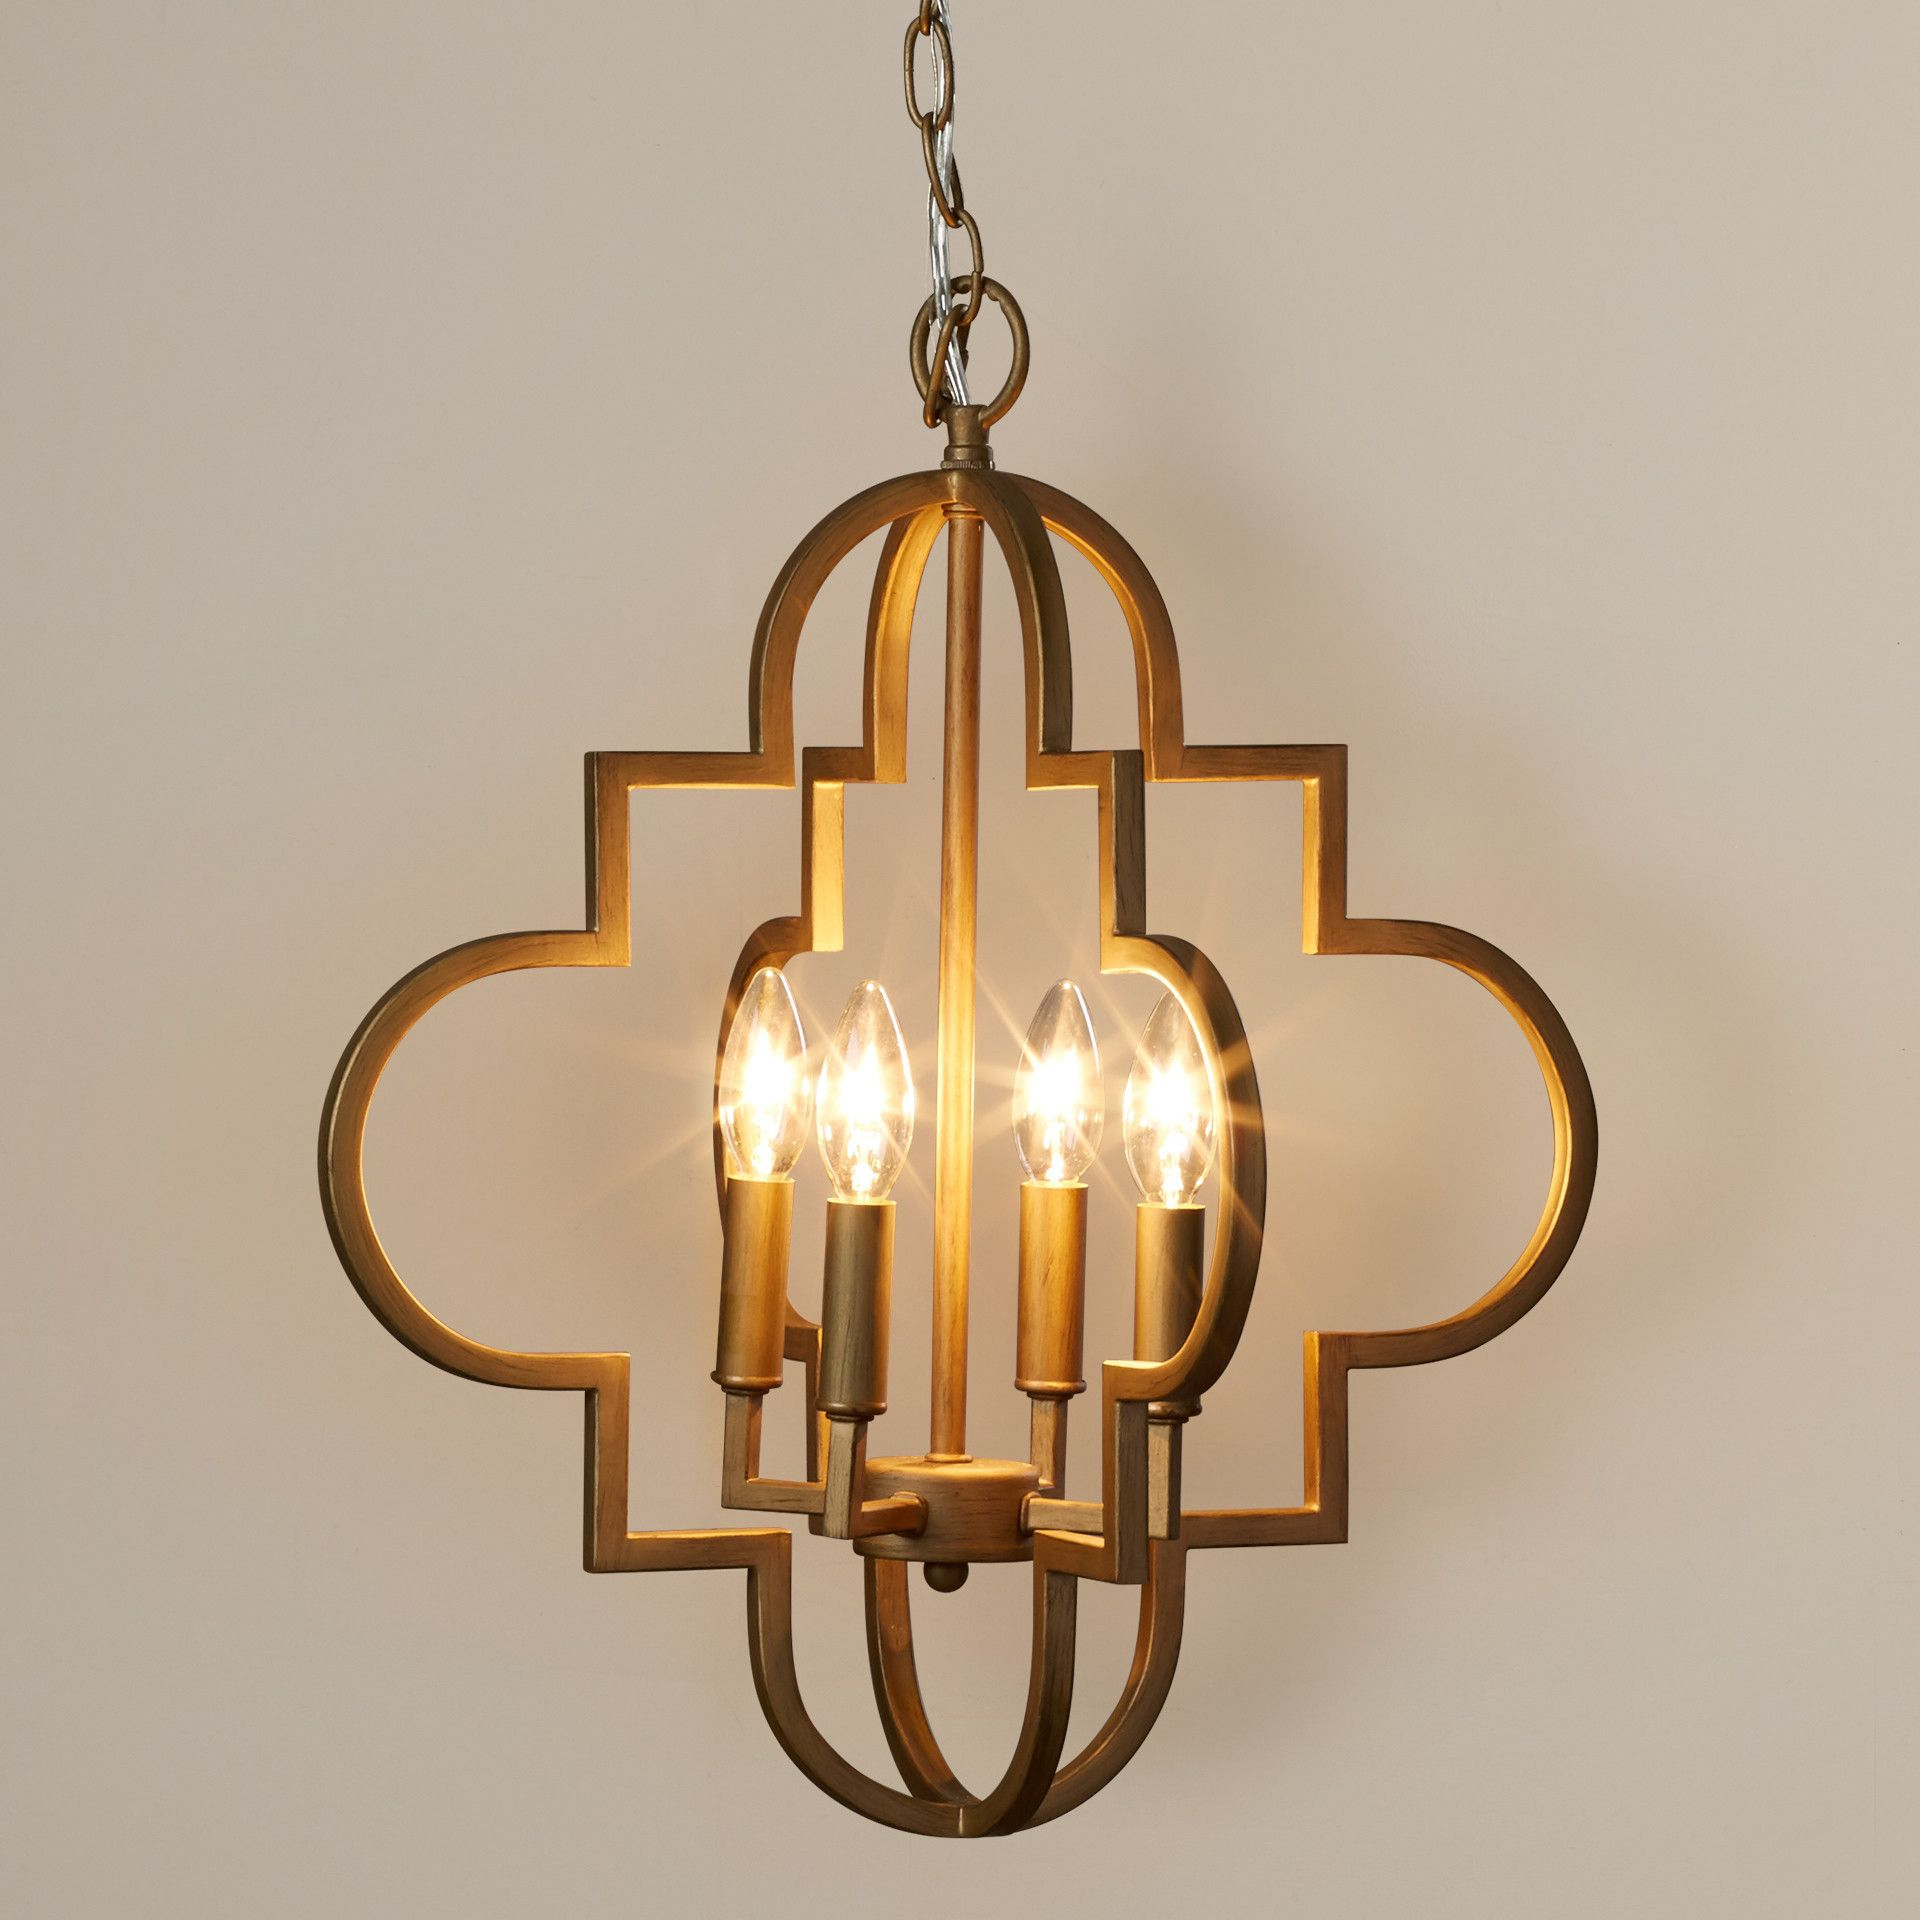 House Of Hampton Aldridge 4 Light Pendant & Reviews For Kaycee 4 Light Geometric Chandeliers (View 17 of 30)